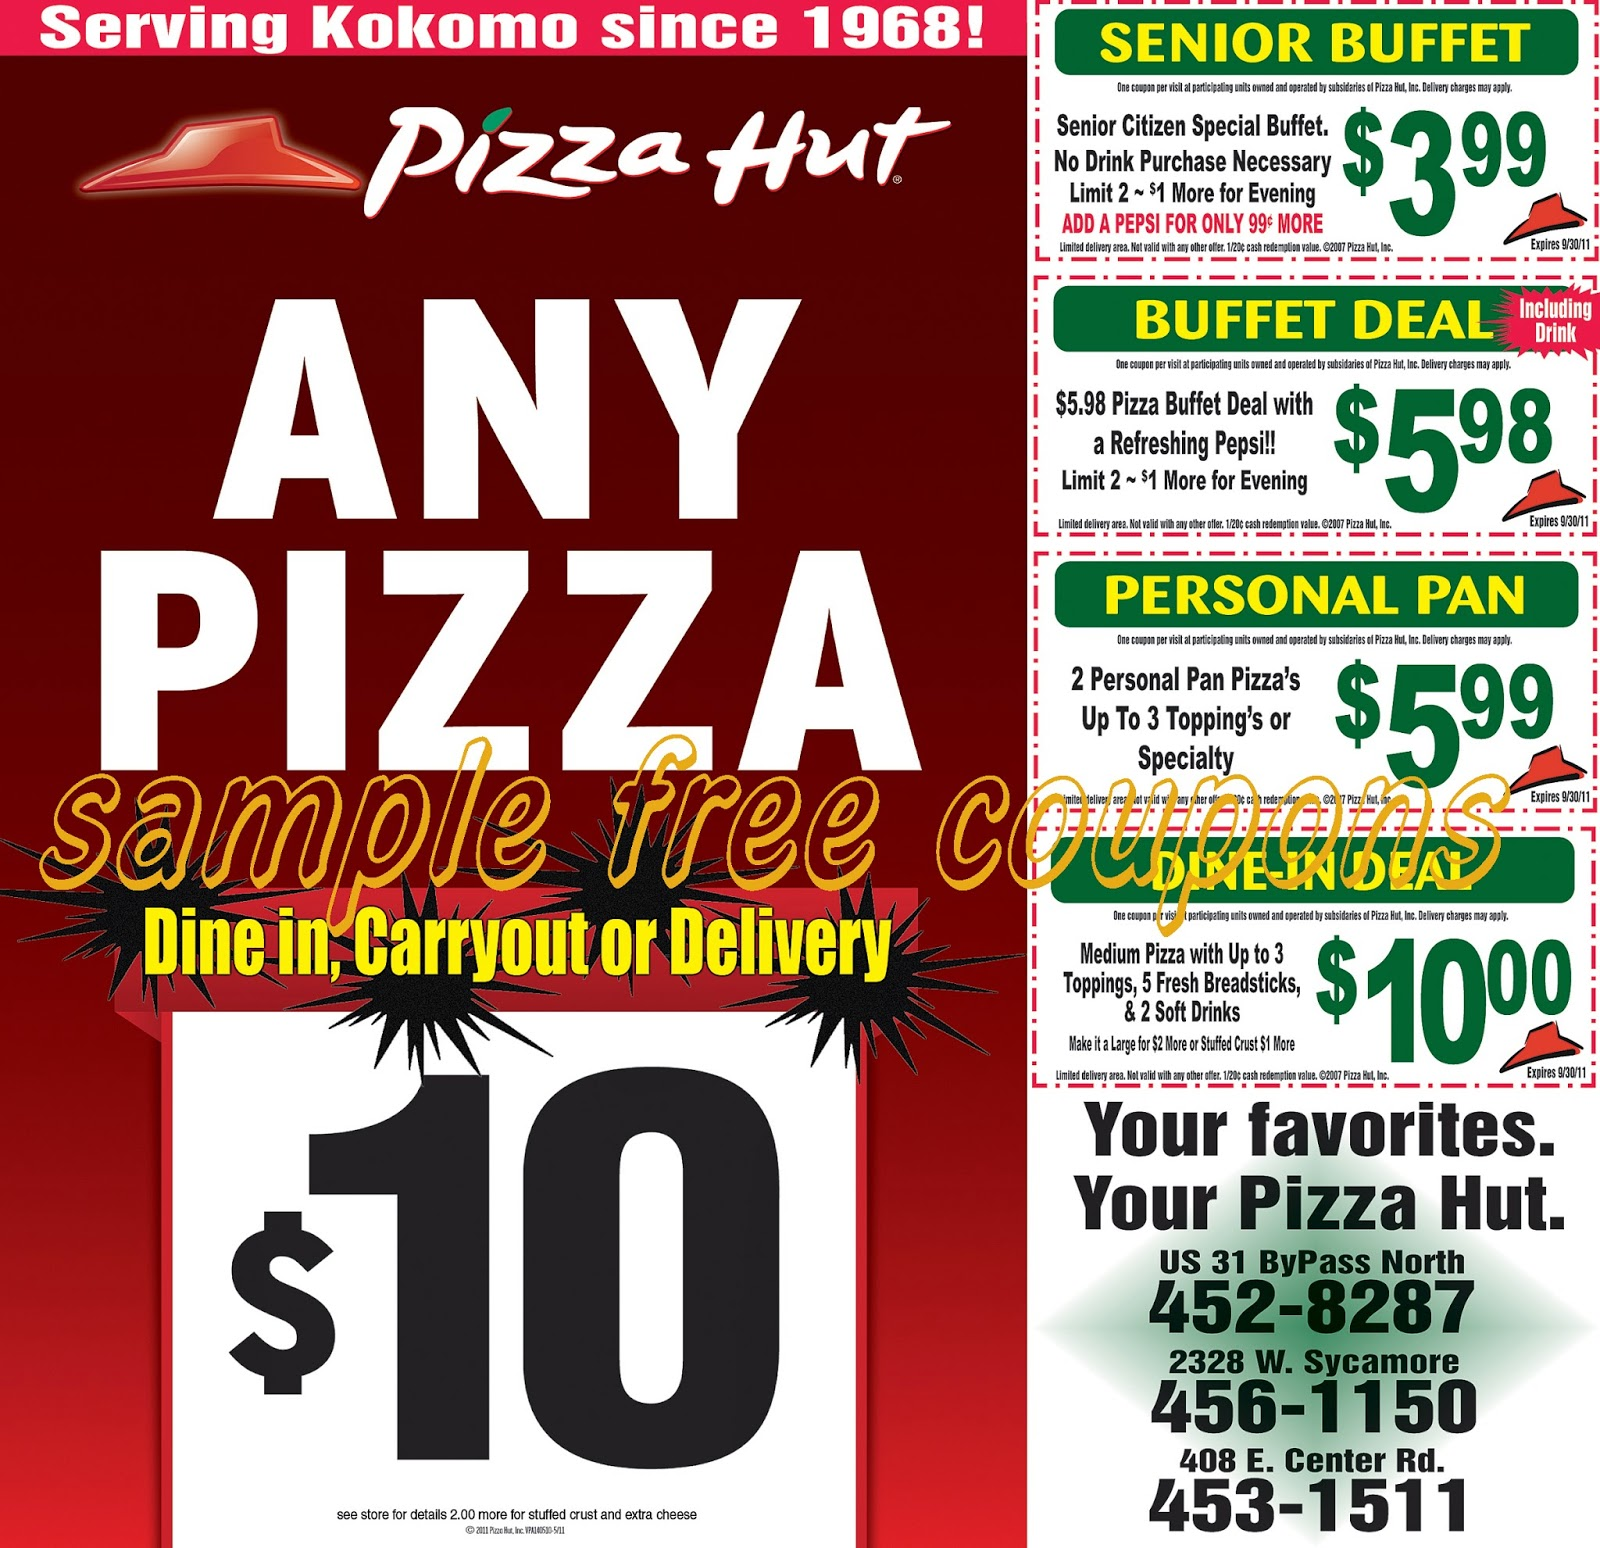 Pizza hut coupons be